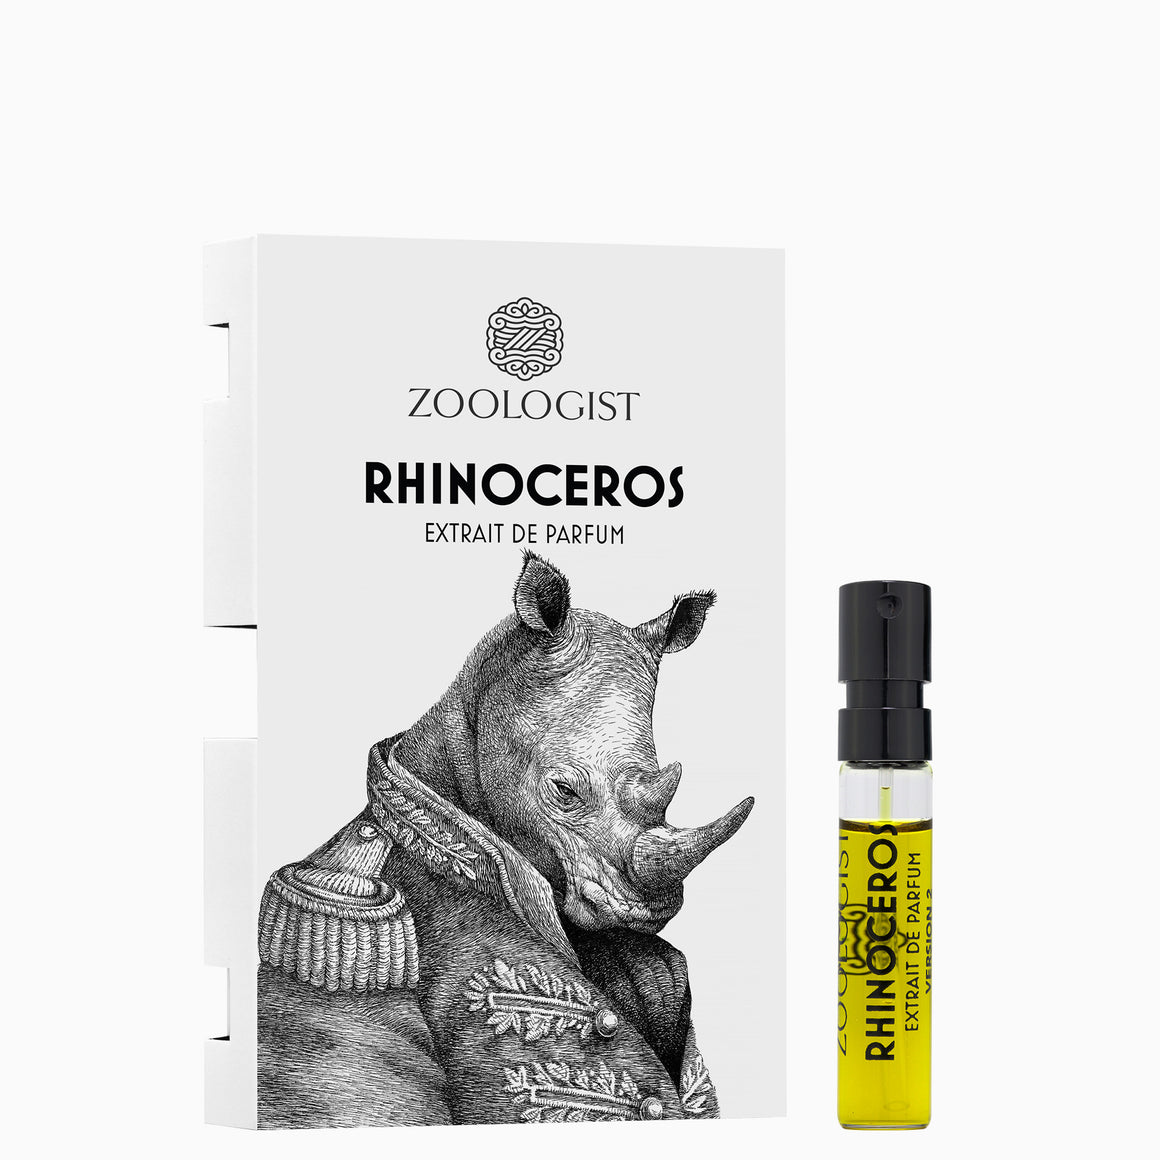 Zoologist Rhinoceros (2020) Sample